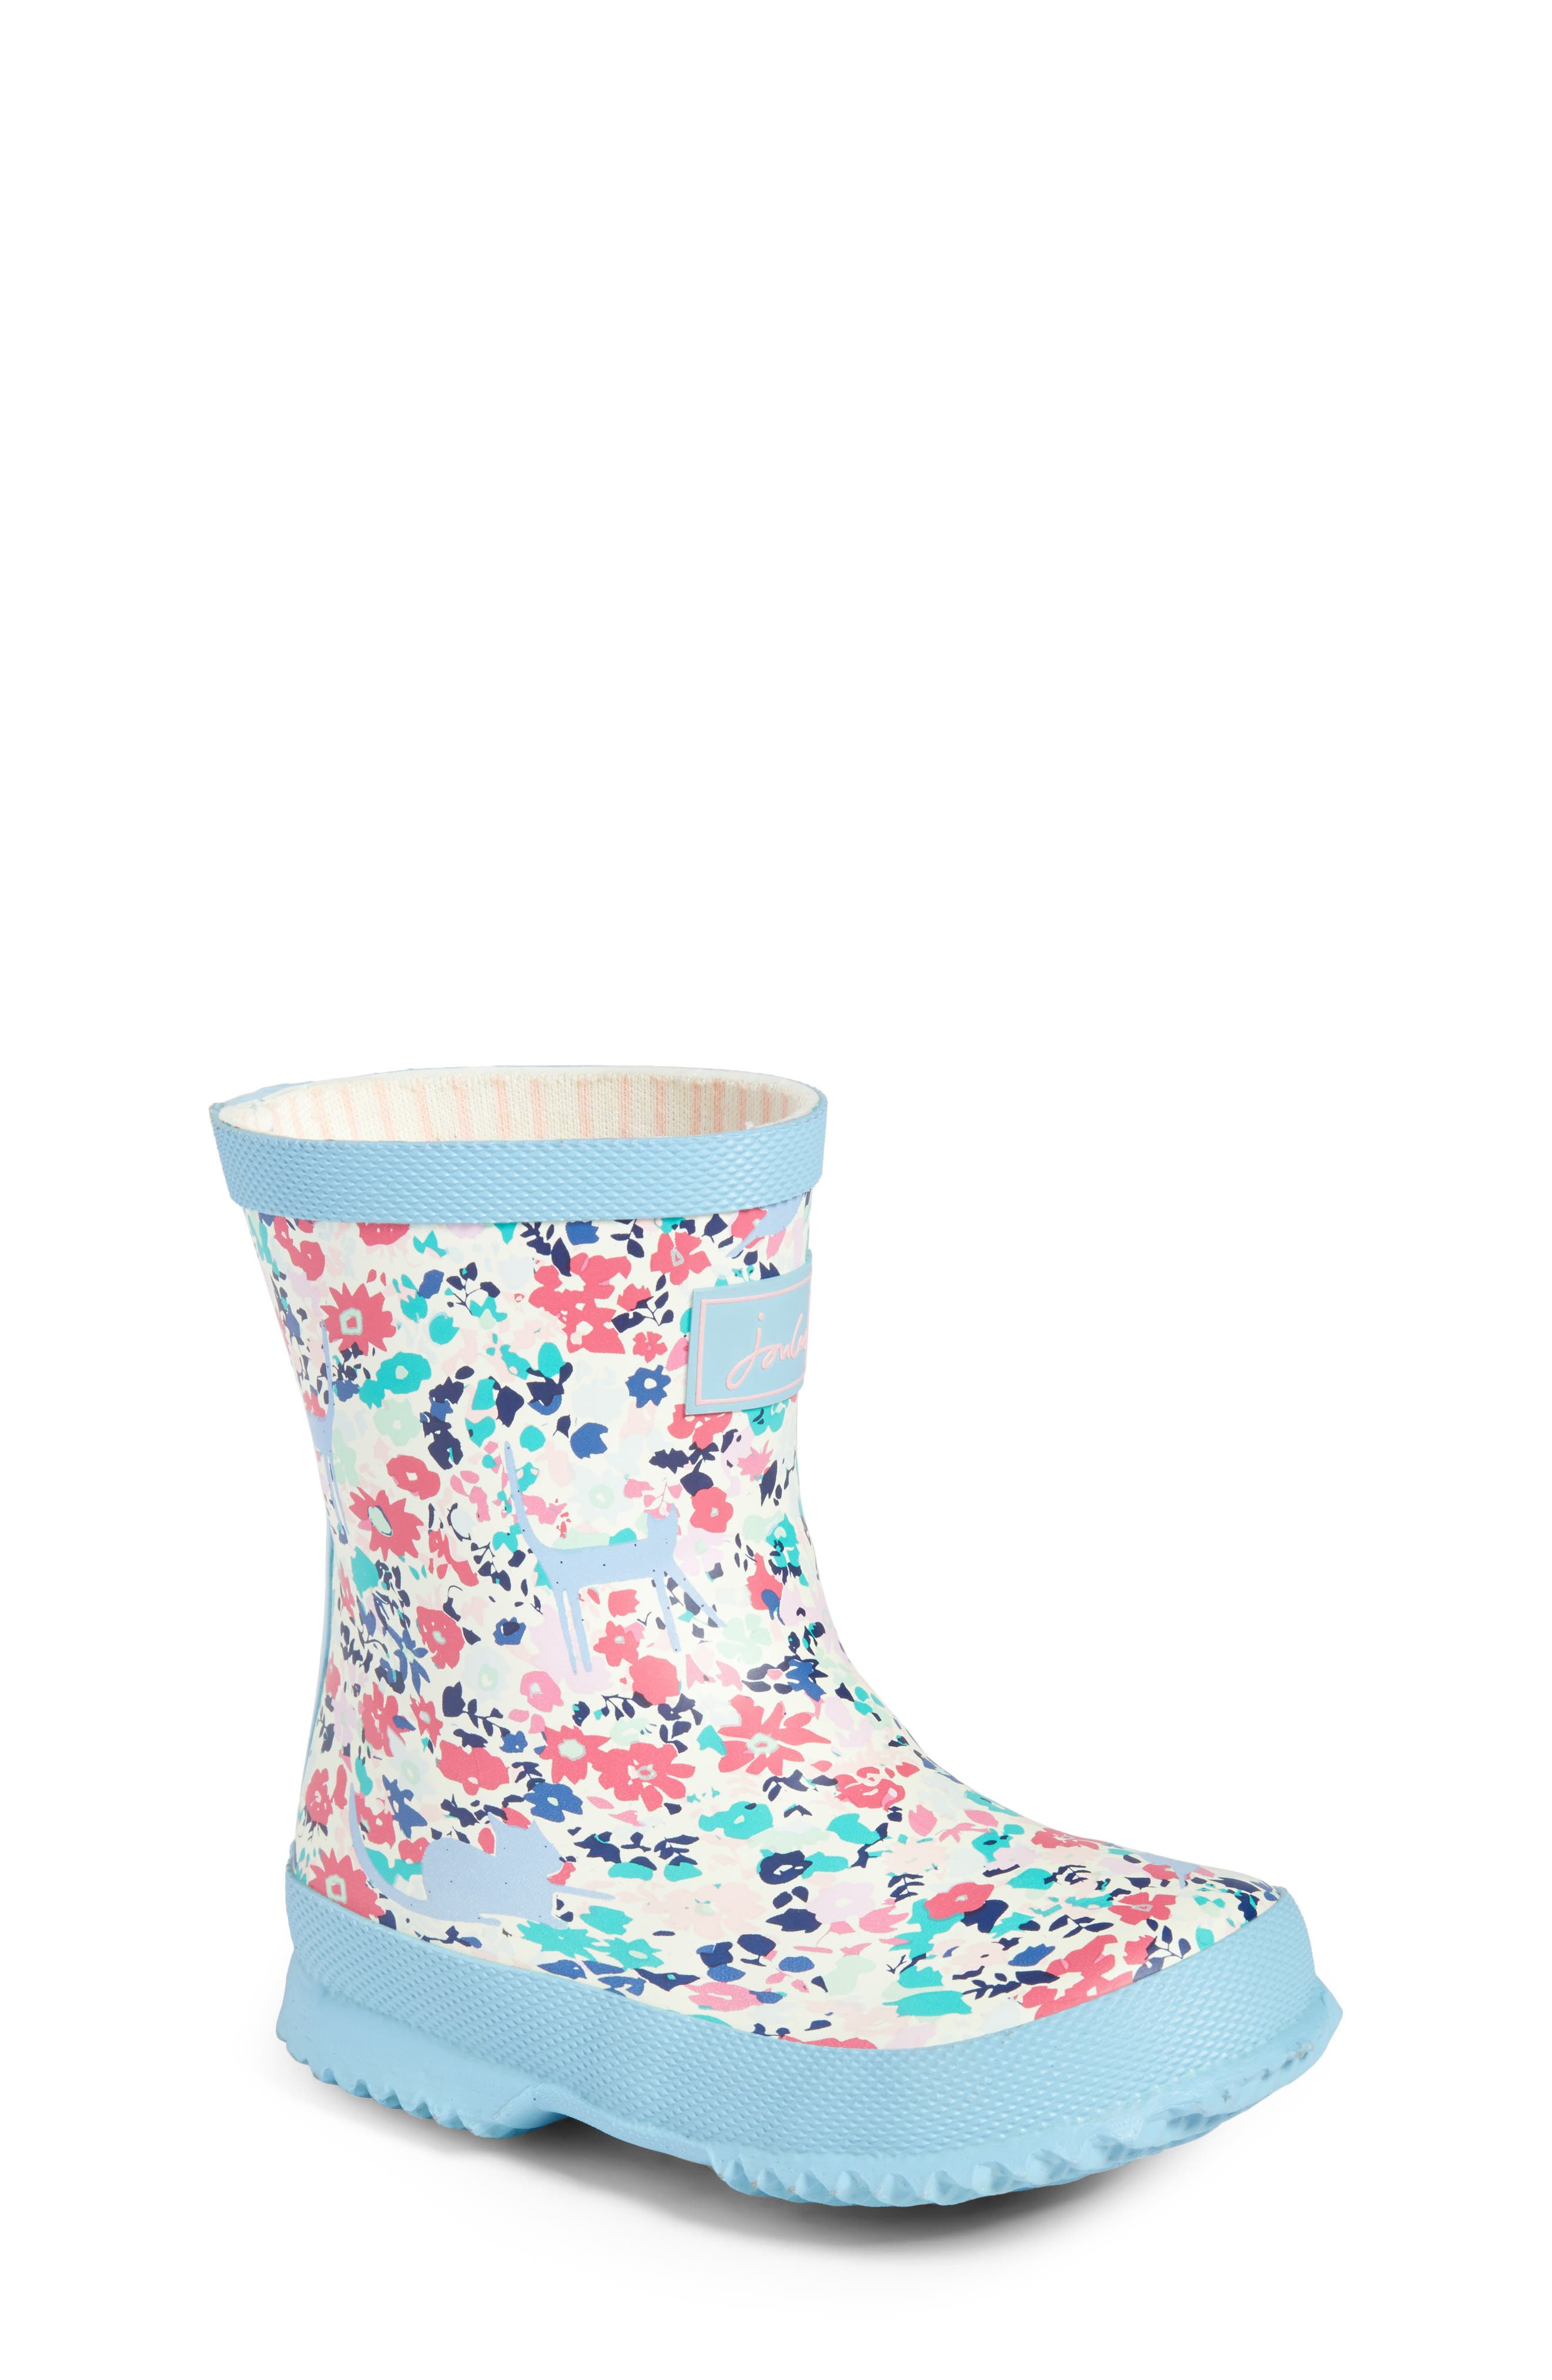 JOULES, Baby Welly Print Waterproof Boot, Main thumbnail 1, color, 406